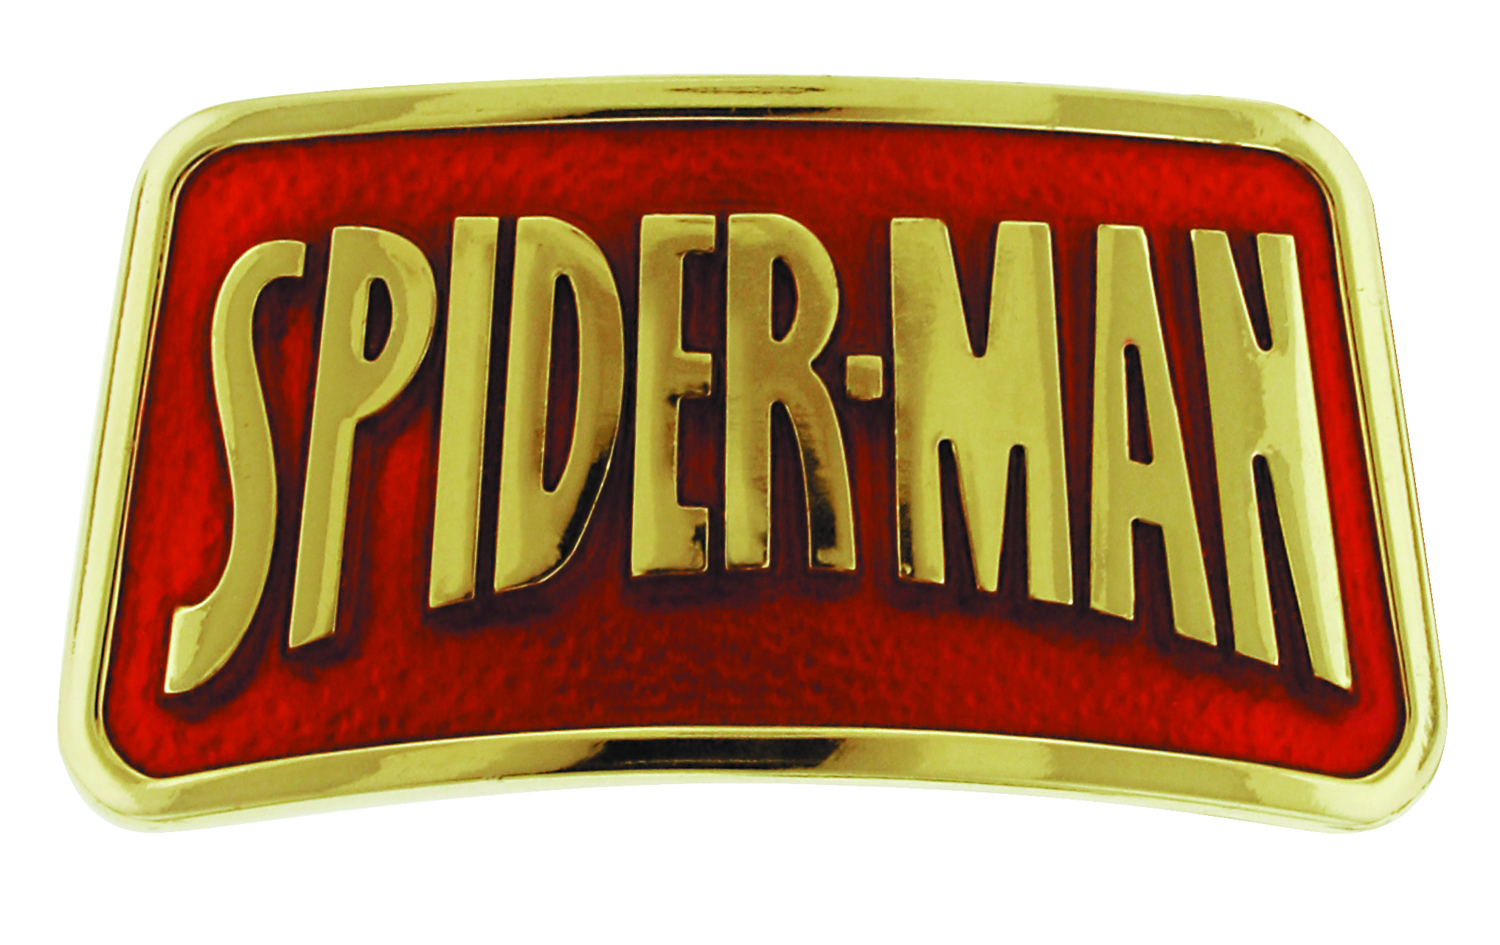 SPIDER-MAN LOGO BELT BUCKLE GOLD